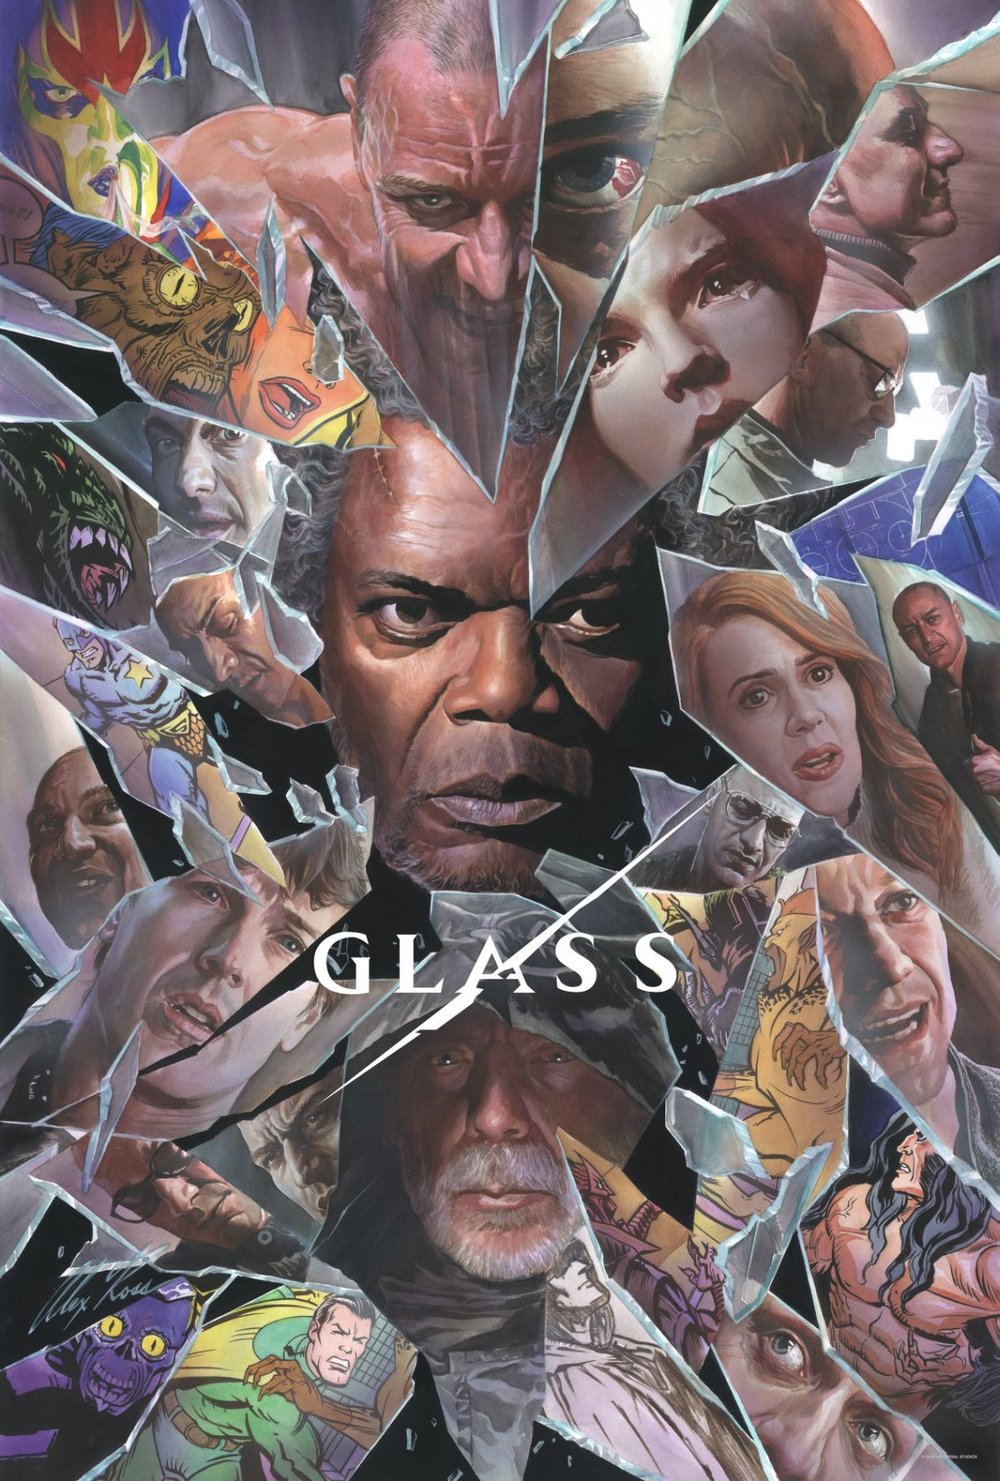 This Cool Comic-Con Poster Art For GLASS Was Created By Alex Ross11